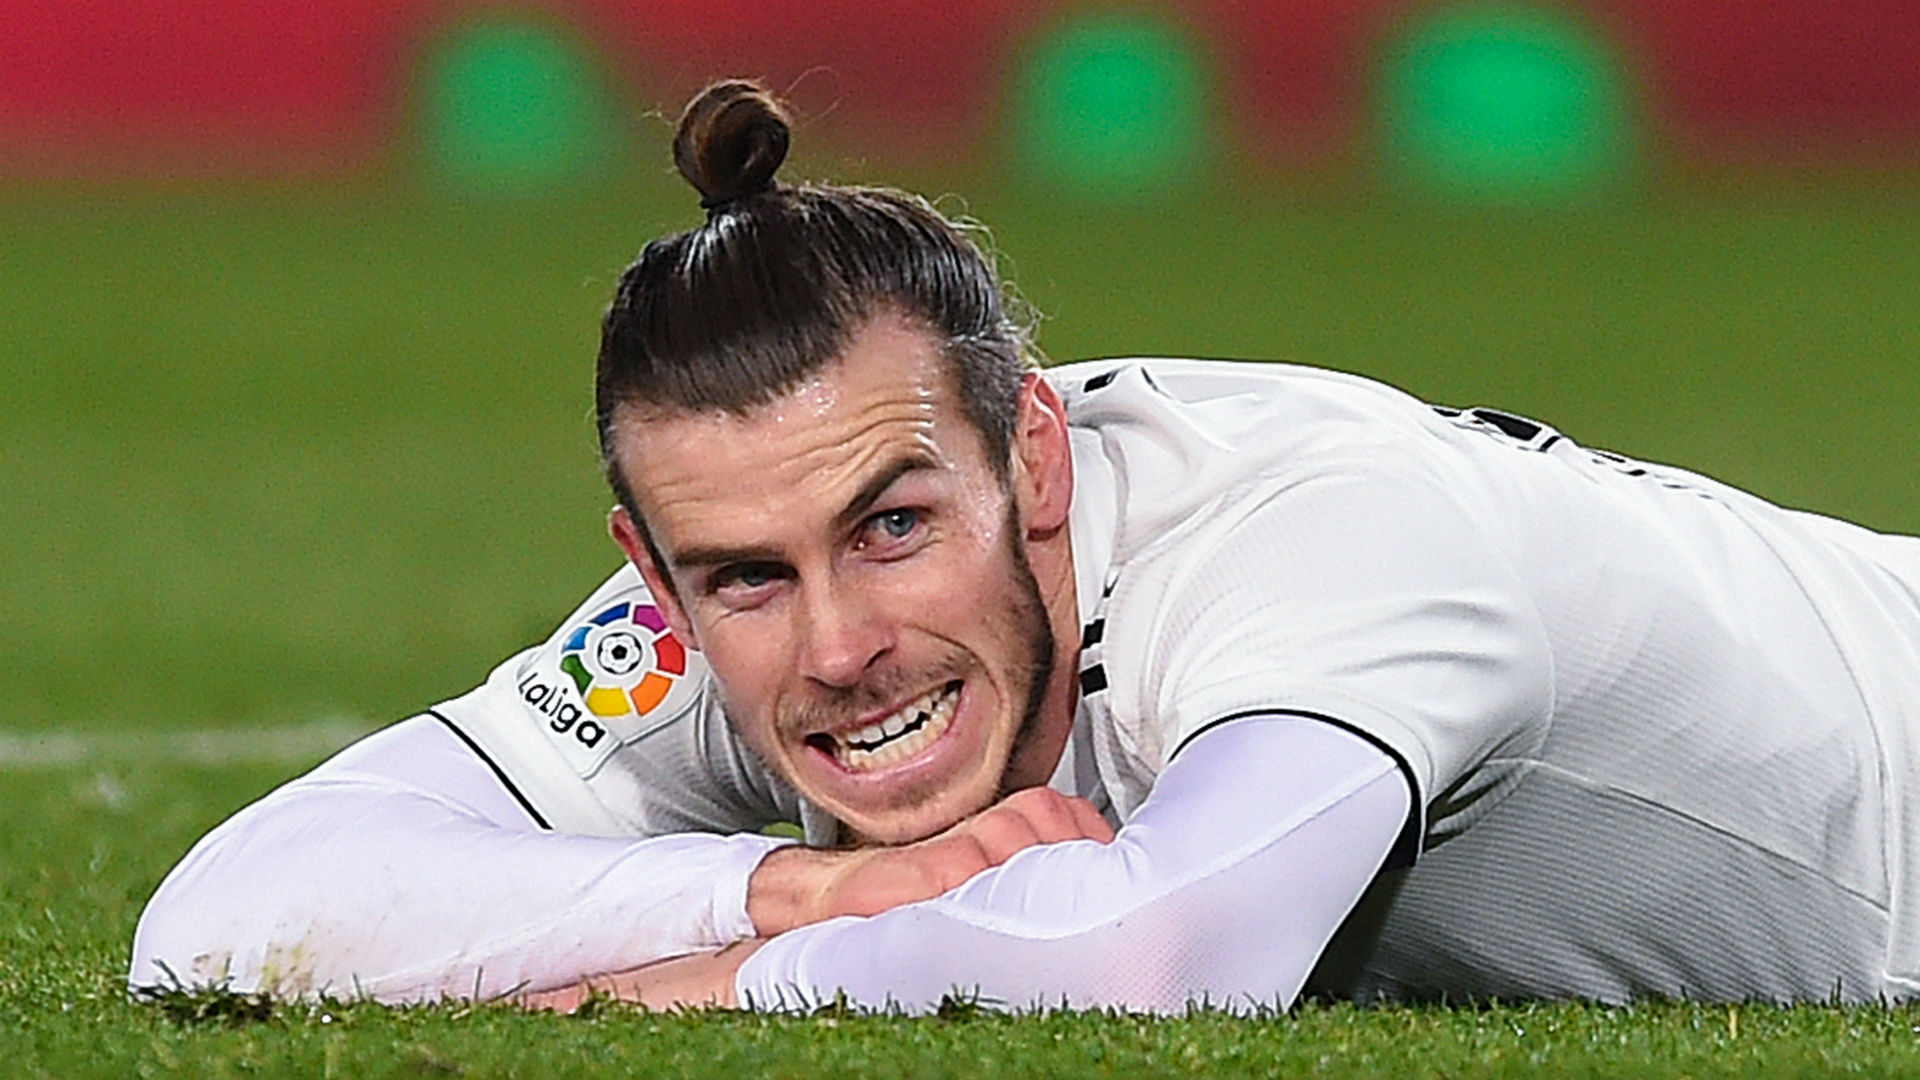 Real Madrid should loan Bale out, says Calderon